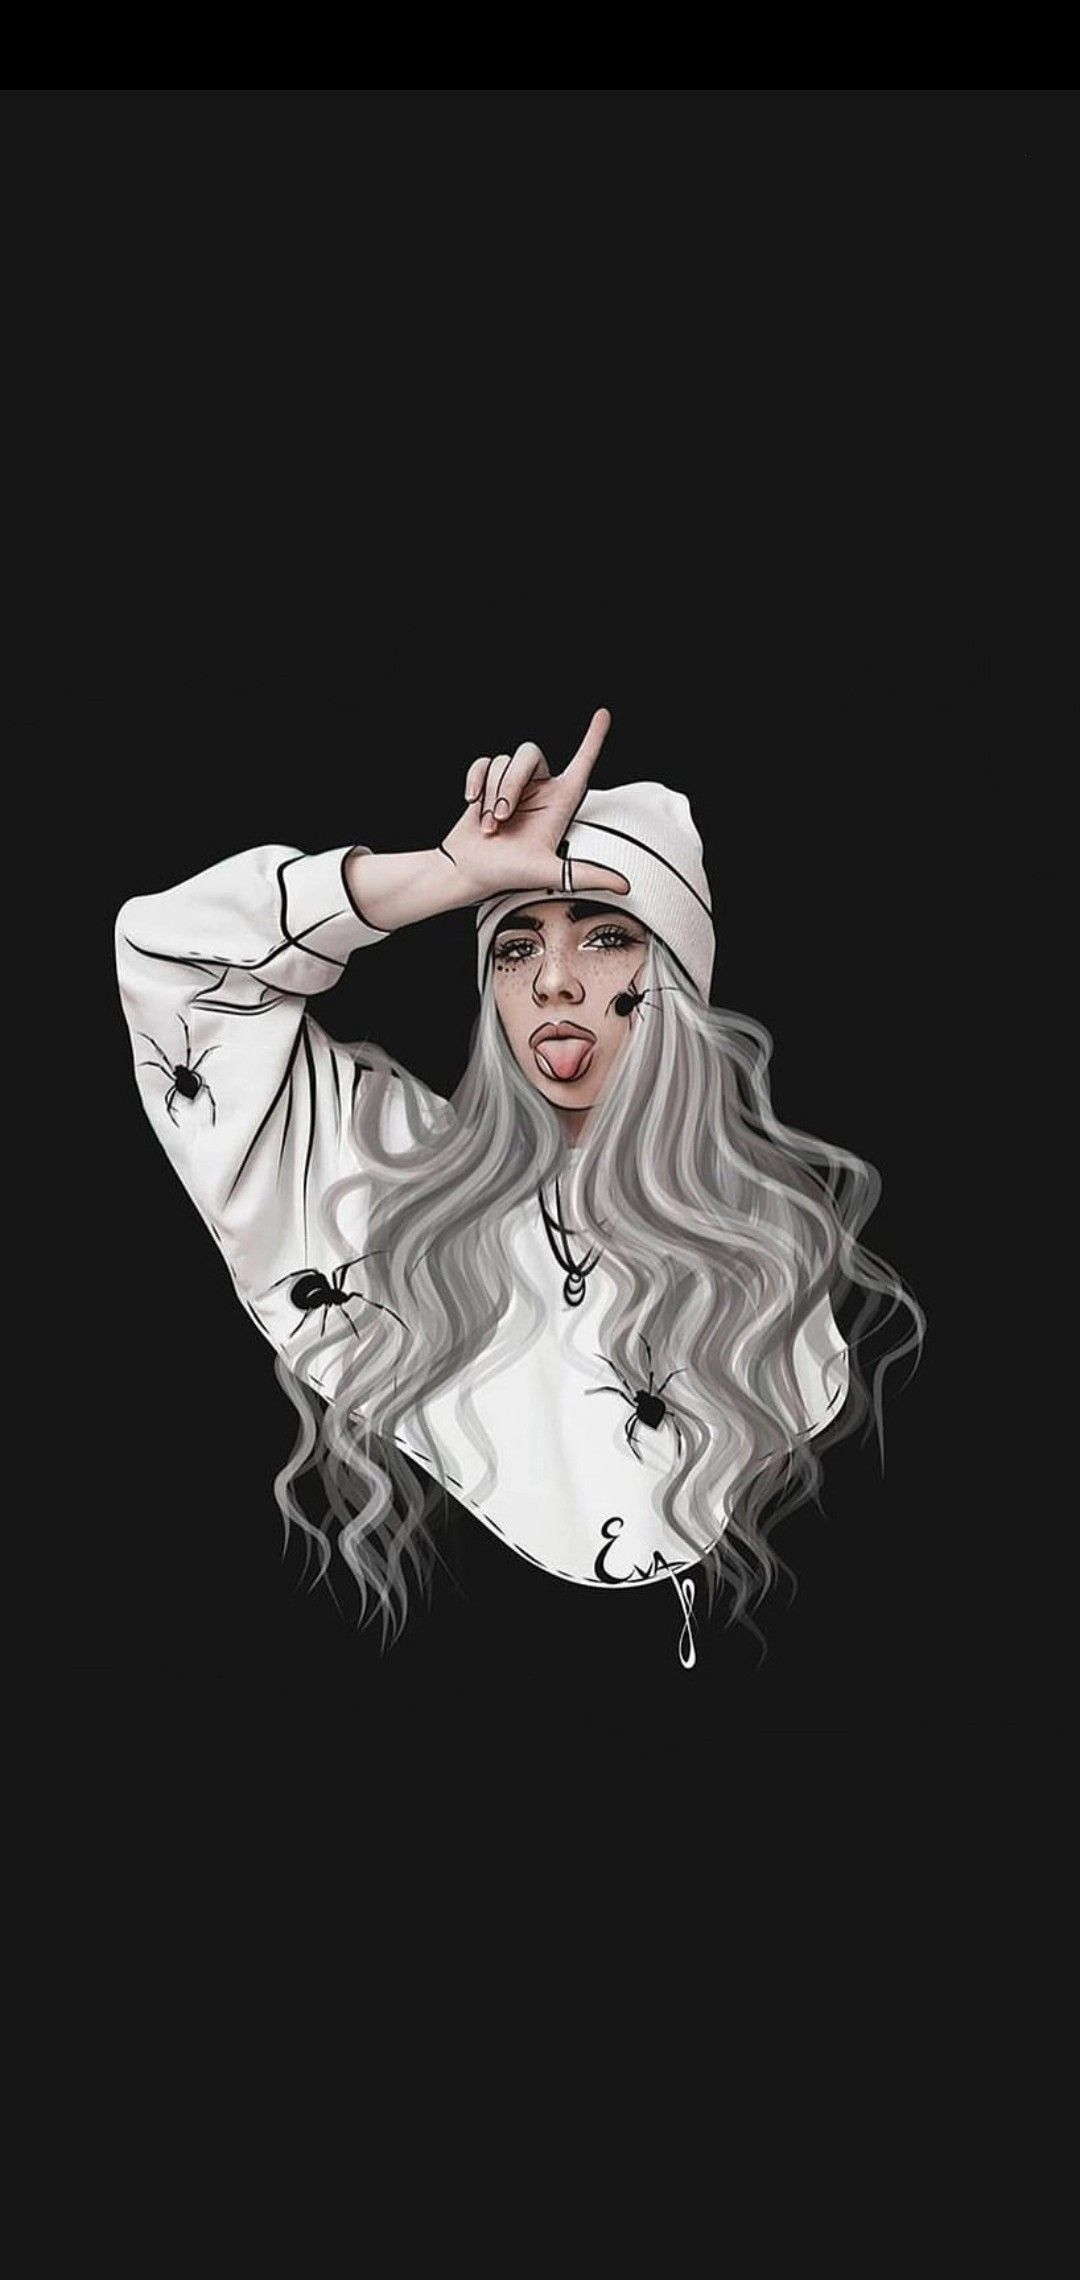 55 Billie Eilish Wallpapers - Download at WallpaperBro, #Billie #Download #Eilish #Wallpaper...